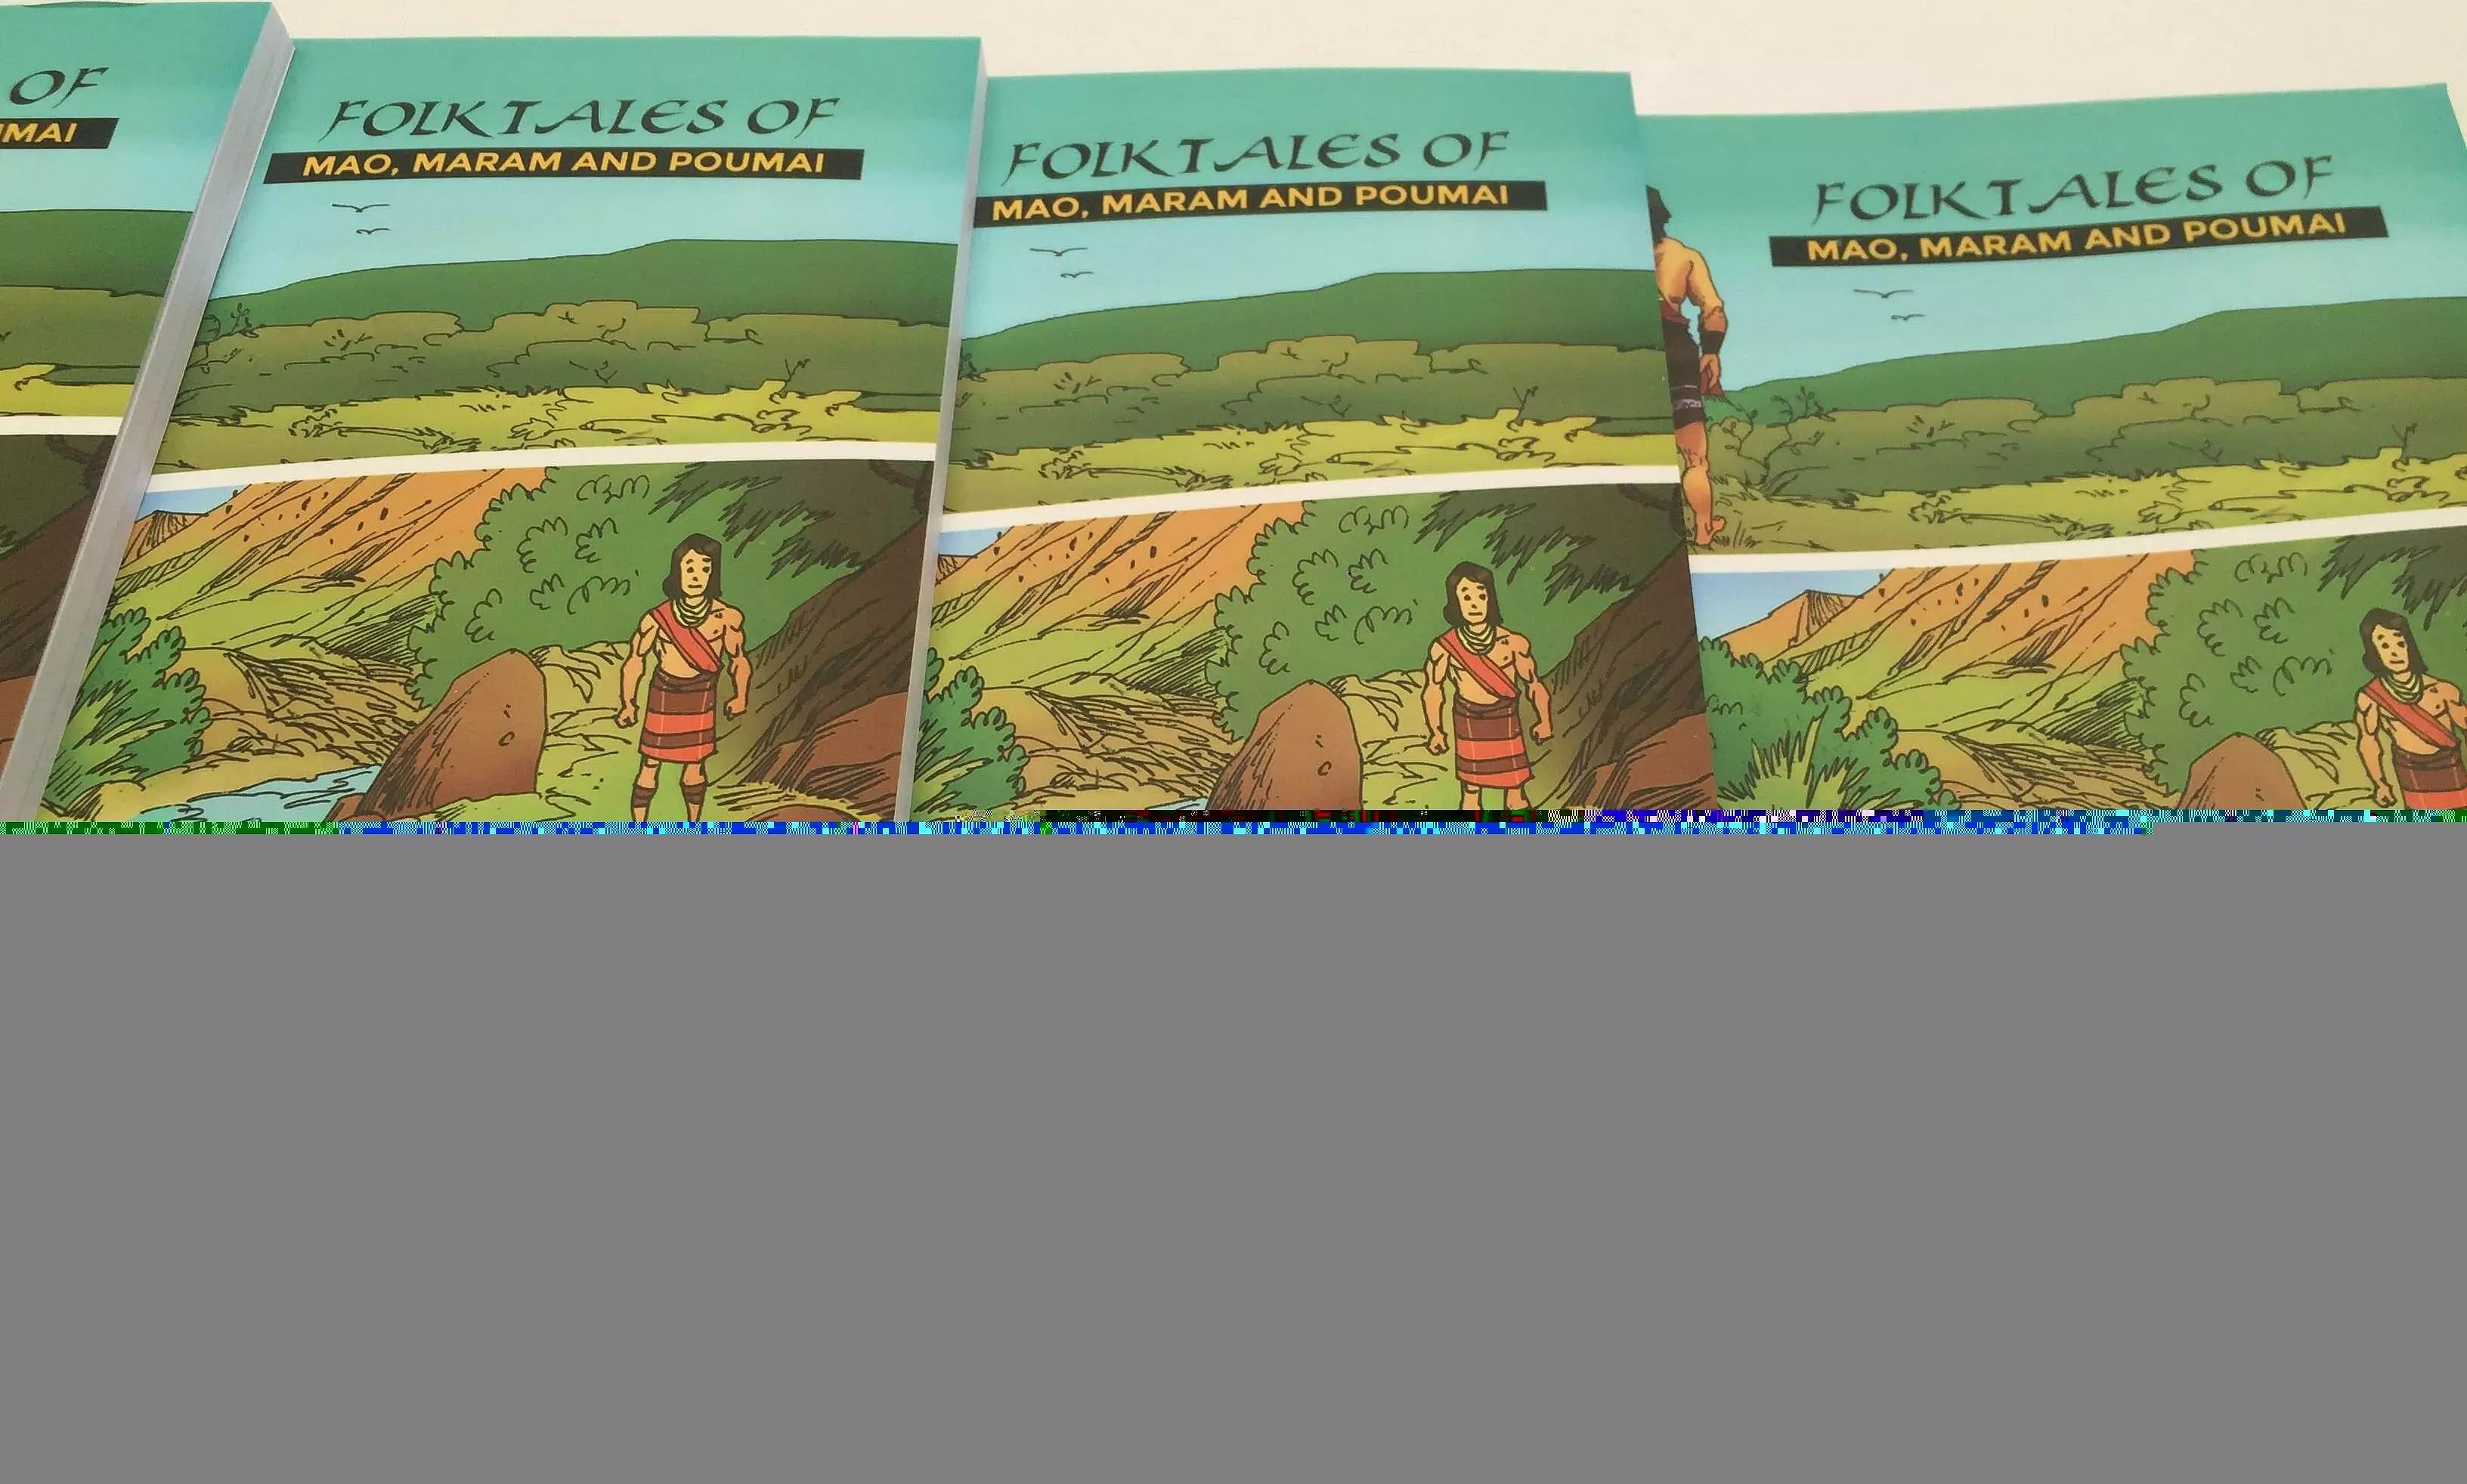 Comic Book Depicting Folktales of Three major Tribes Released in Manipur